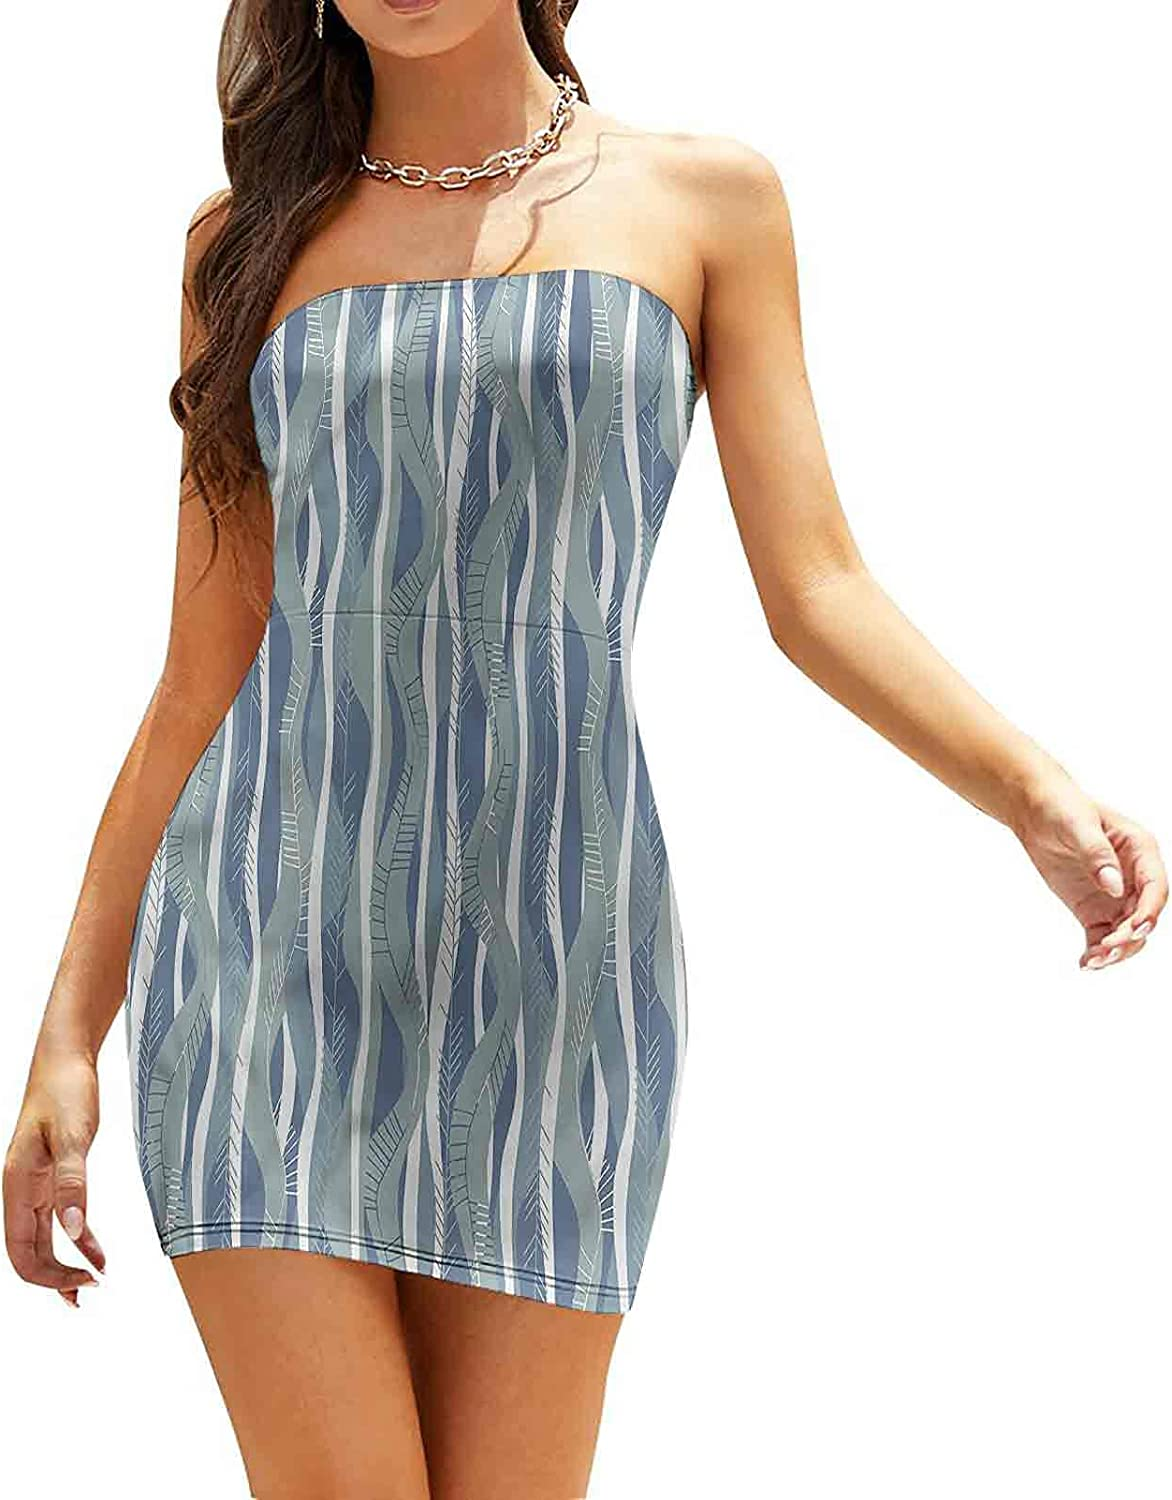 Women's Sleeveless Sexy Tube Top Dress Abstract Ikat Composition Dresses